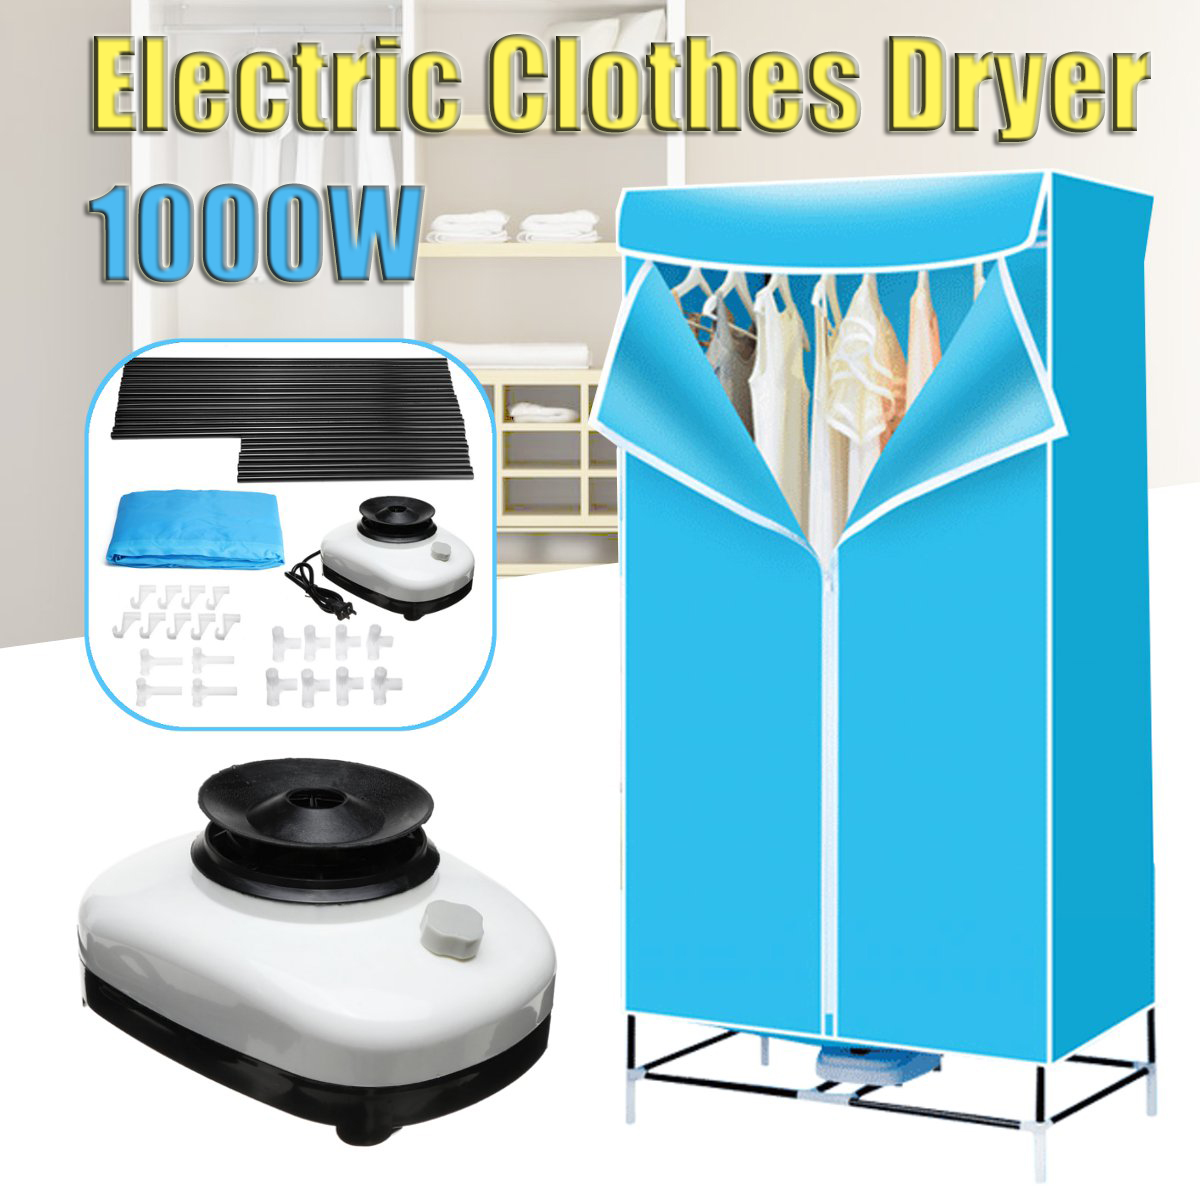 1000w portable electric clothes dryer